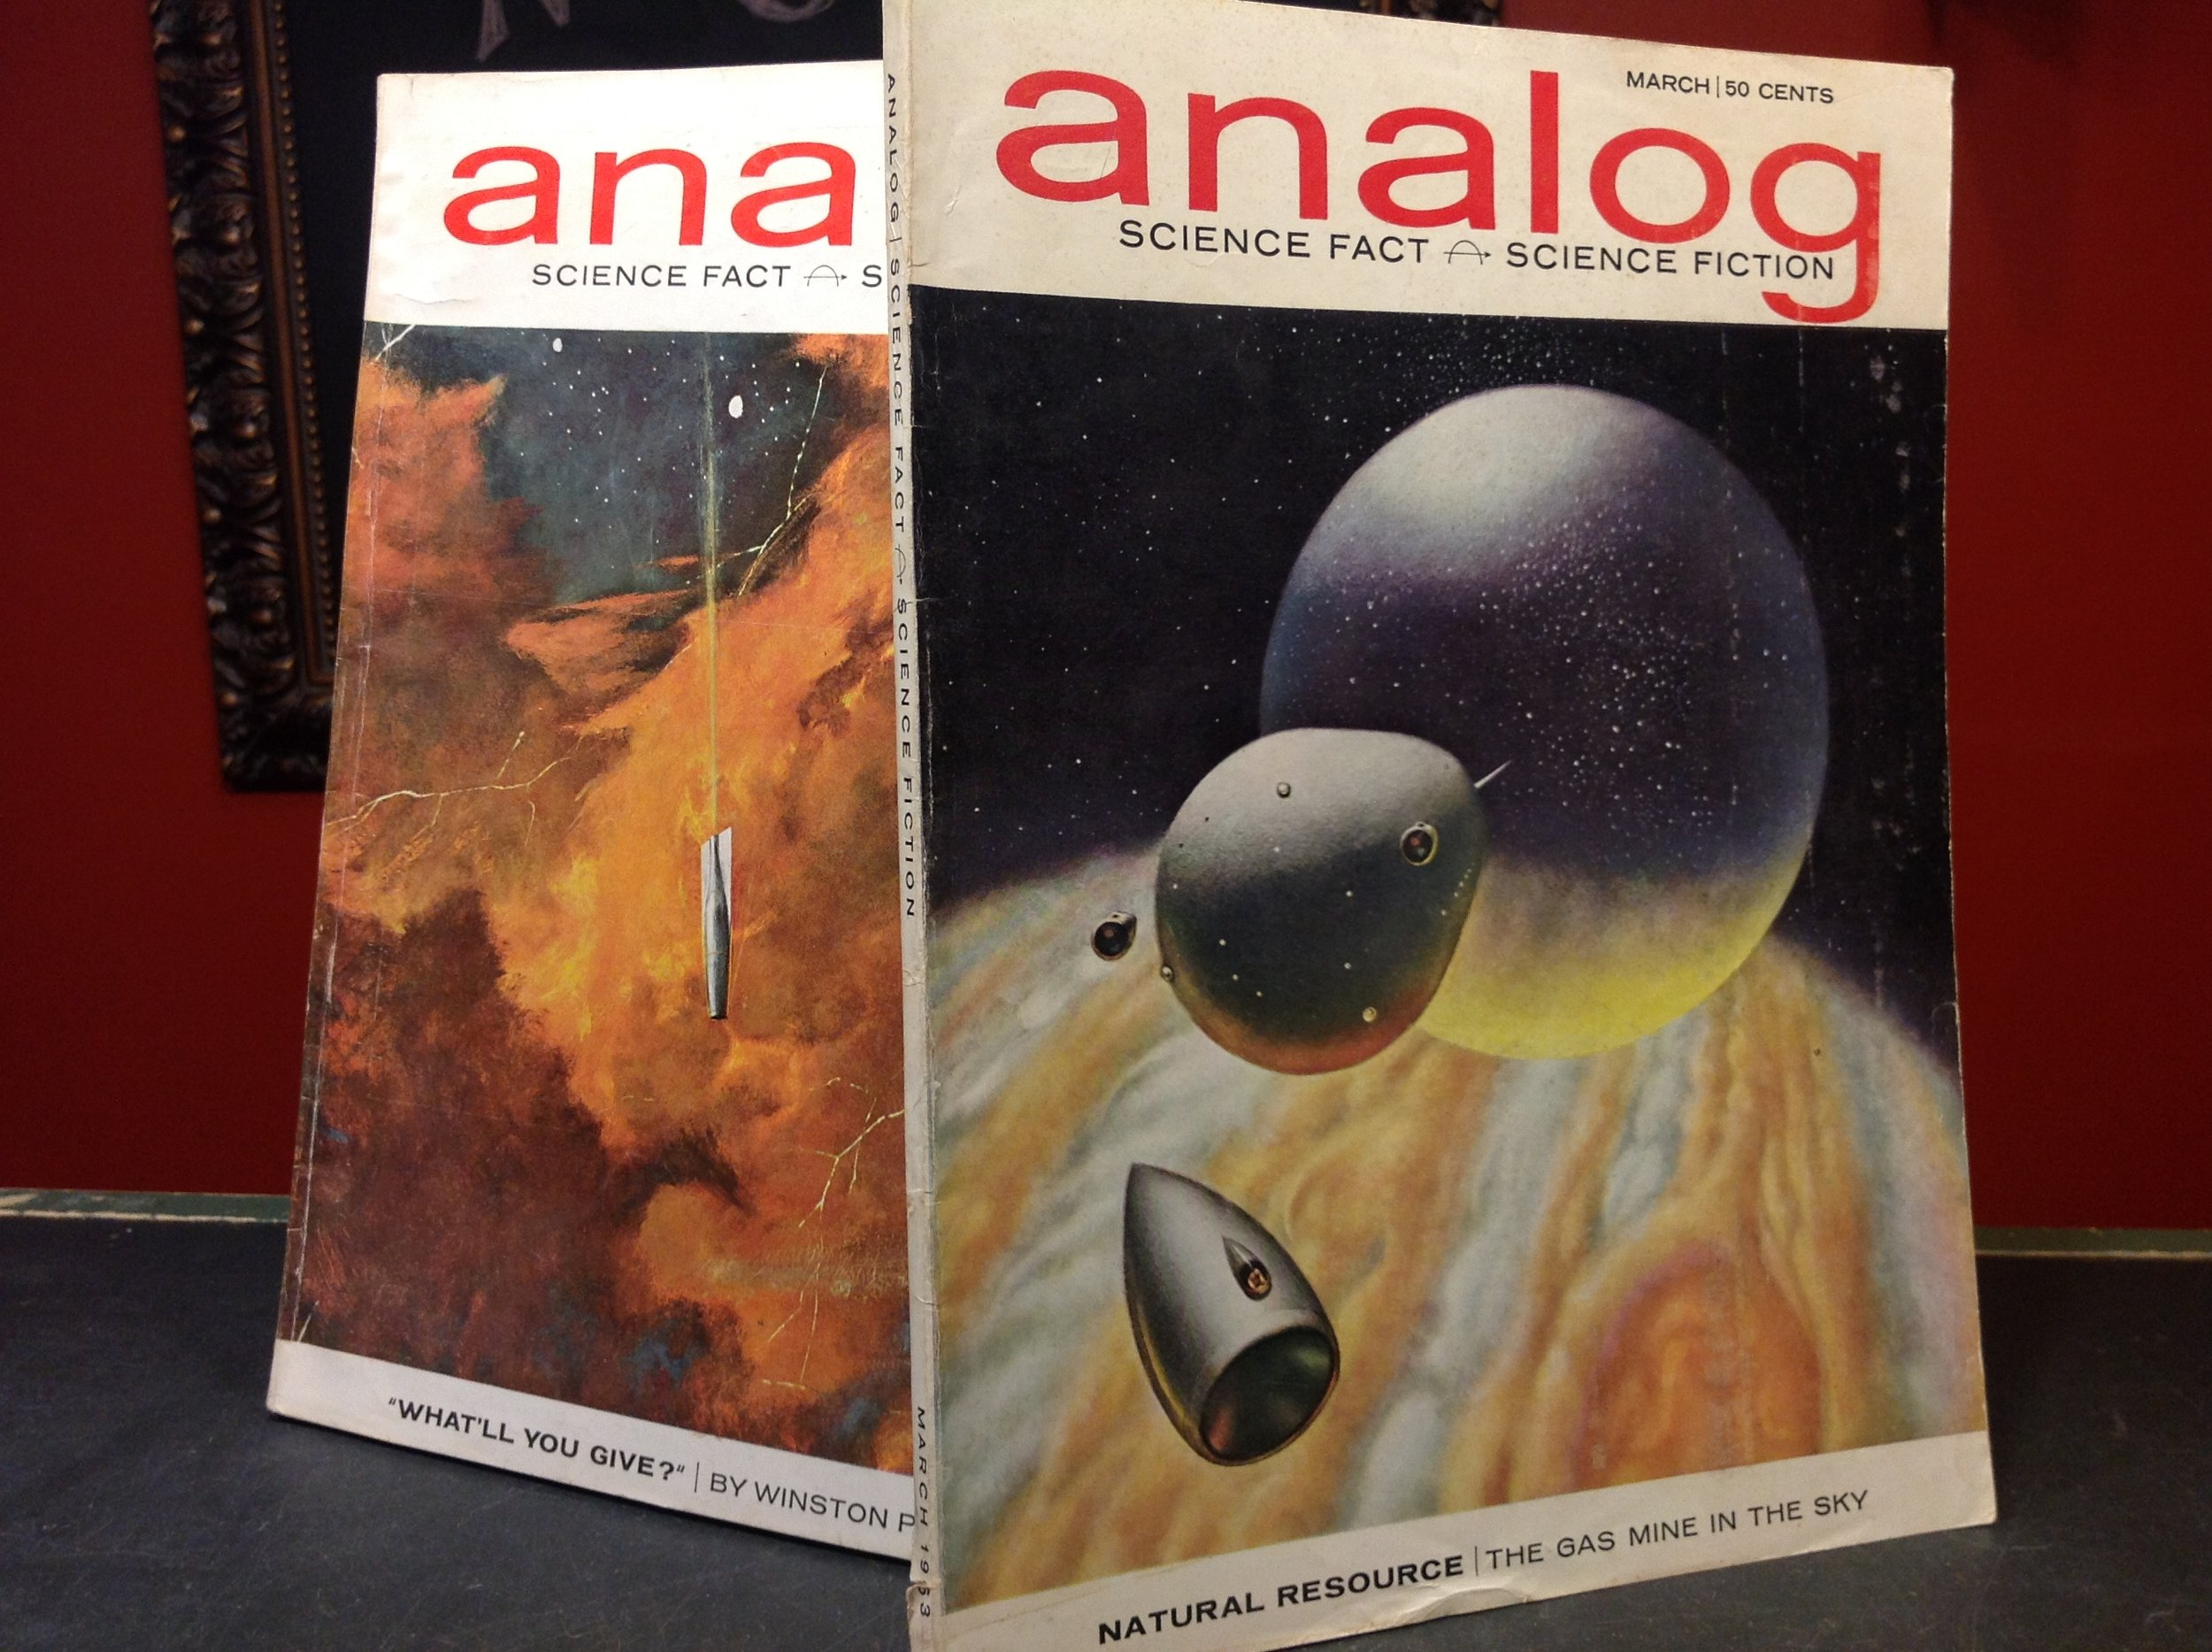 Analog - 1963 March and April issues of Analog: Science Fact and Science Fiction. Just 2 of our large science fiction journal collection.